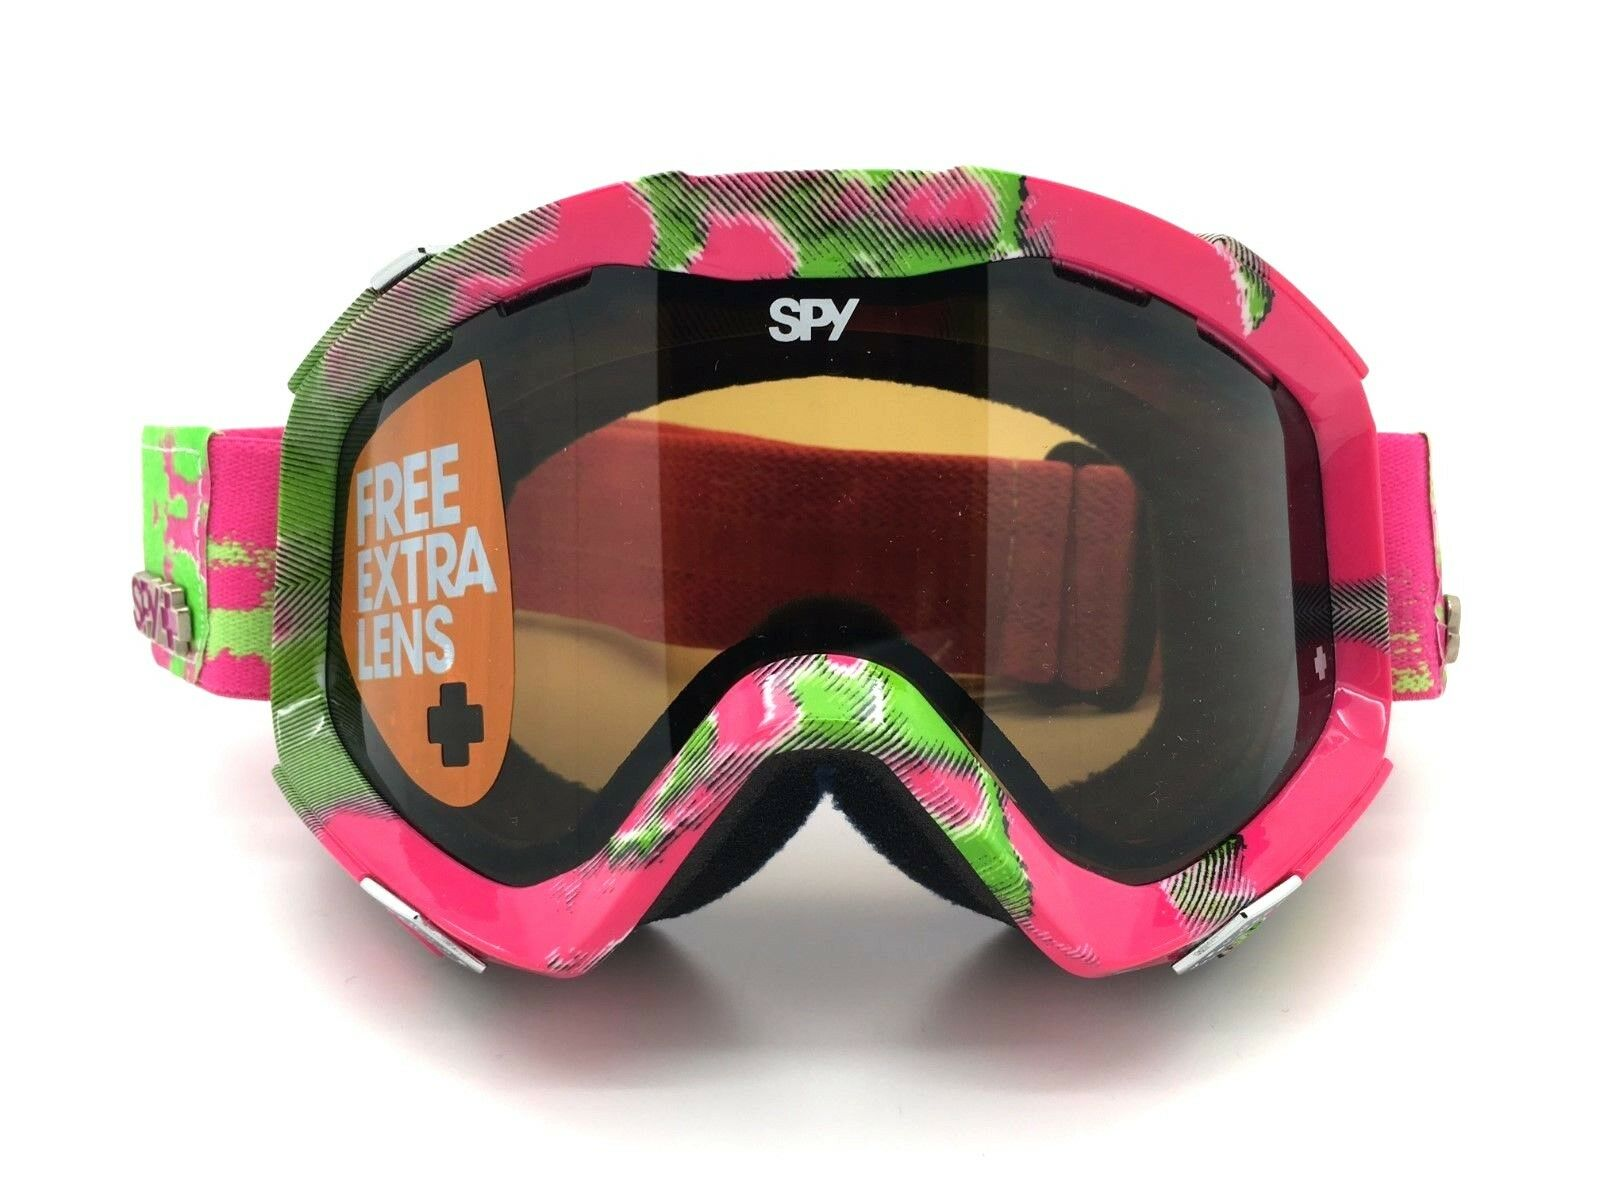 SPY+ Optic  ZED Snow Goggle 311019735070 pink Green Frame Bronze Persimmon Lenses  for your style of play at the cheapest prices